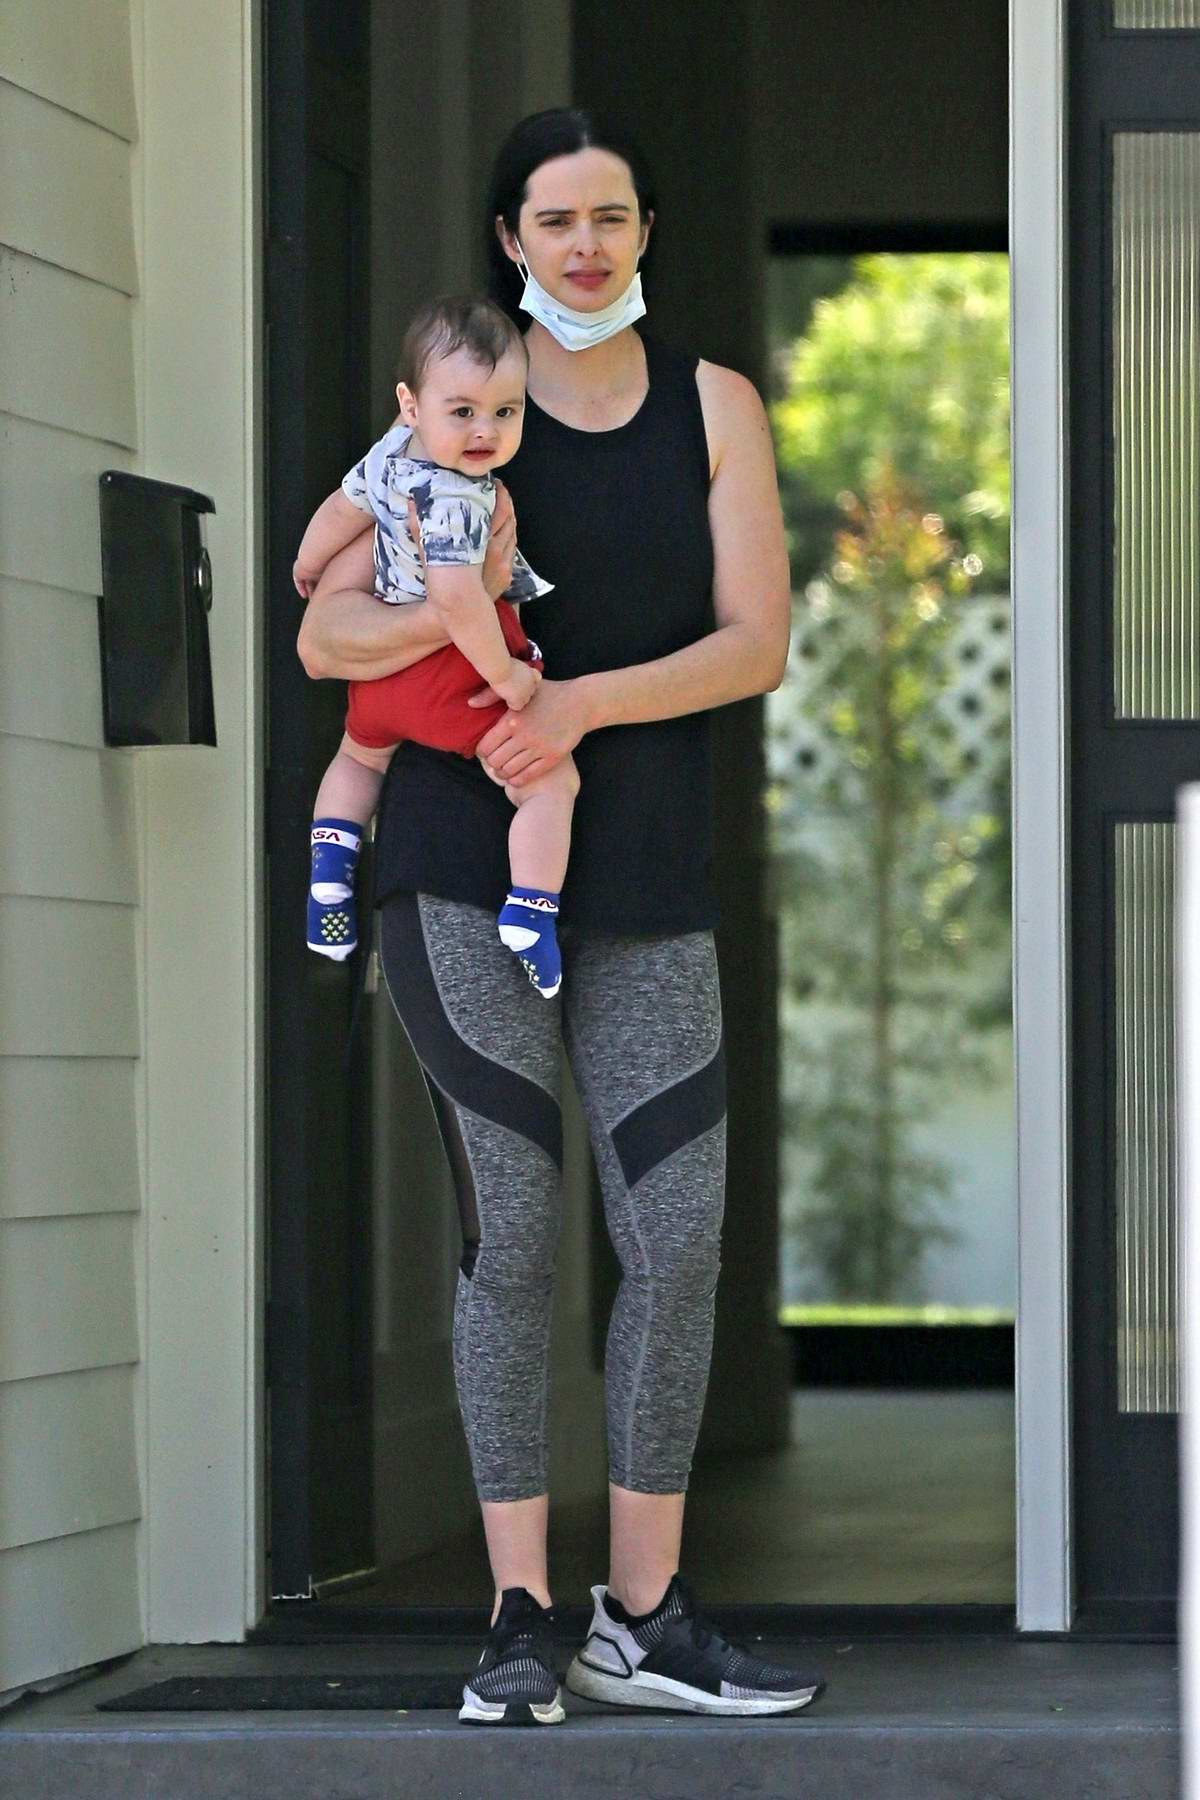 Krysten Ritter seen enjoying the weather with her son in Los Angeles